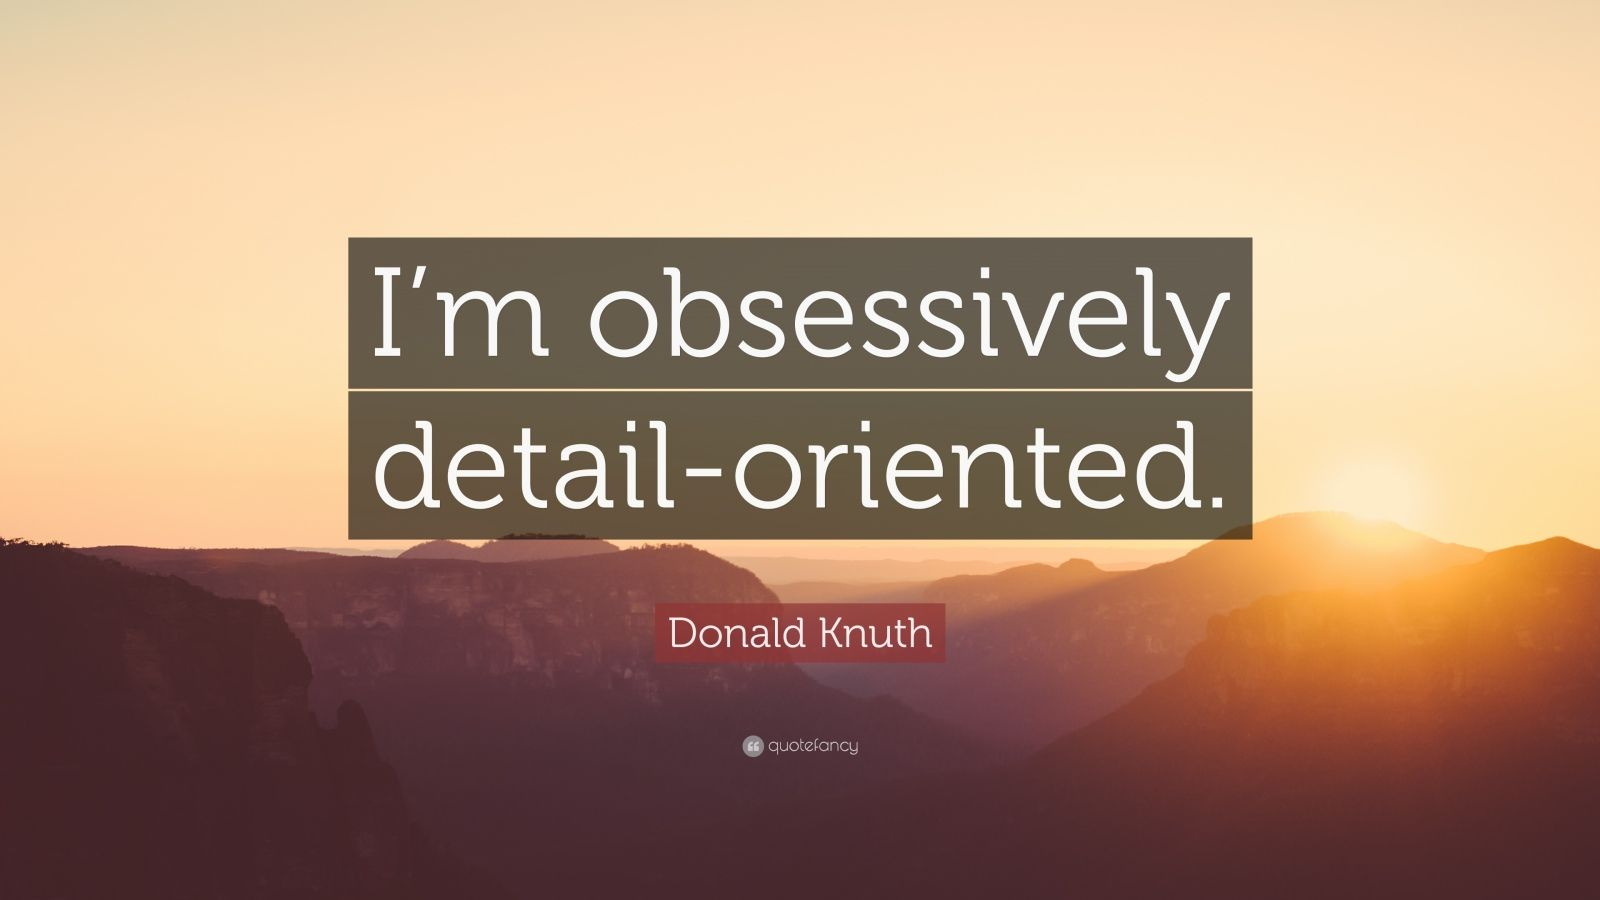 donald knuth quotes quotefancy donald knuth quote i m obsessively detail oriented